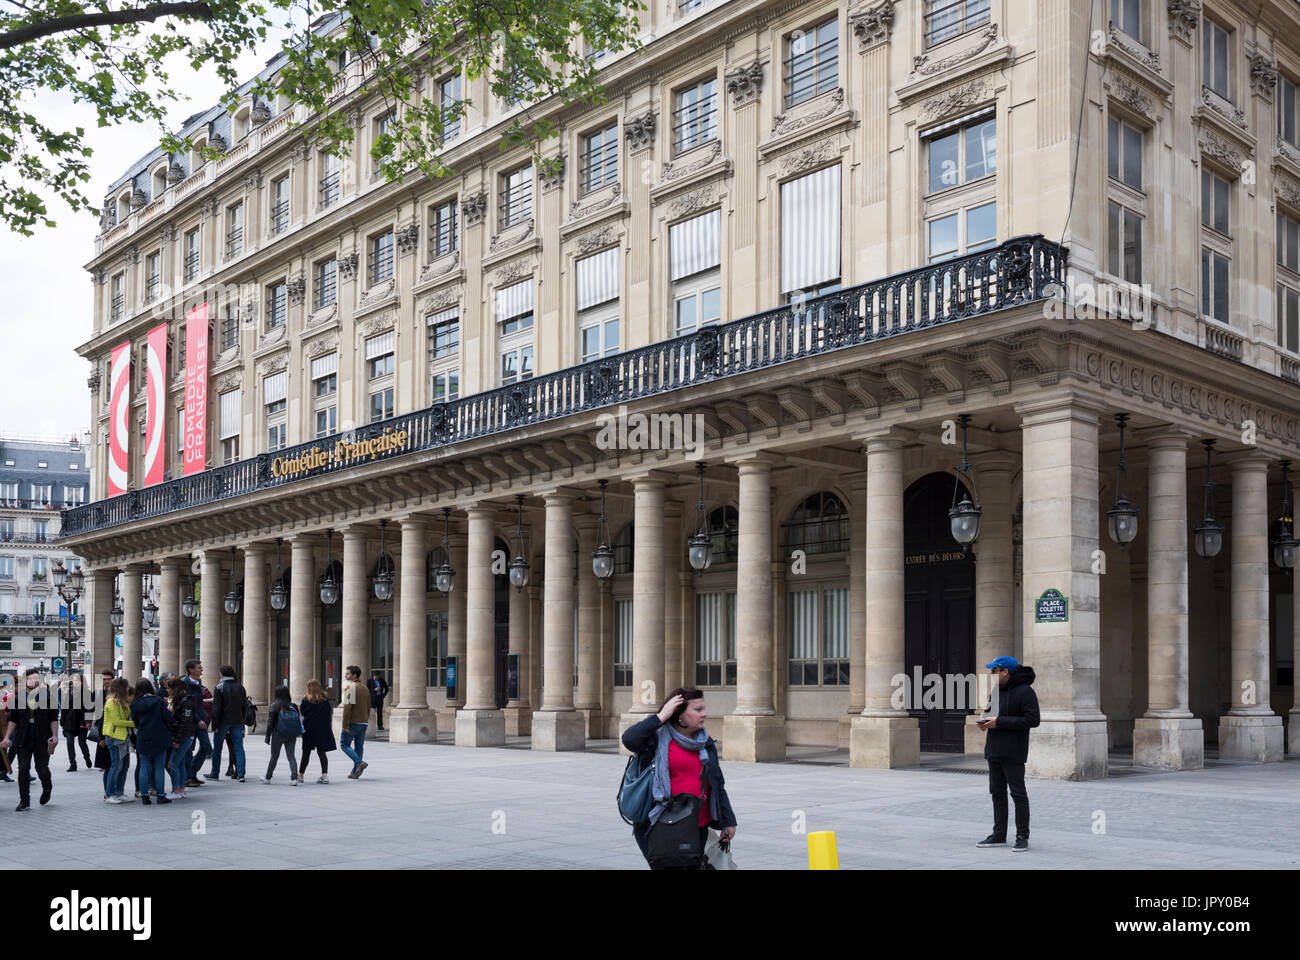 Paris,France- April 29, 2017:Theater Comedie Frances. Nearby there are pedestrians - Stock Image